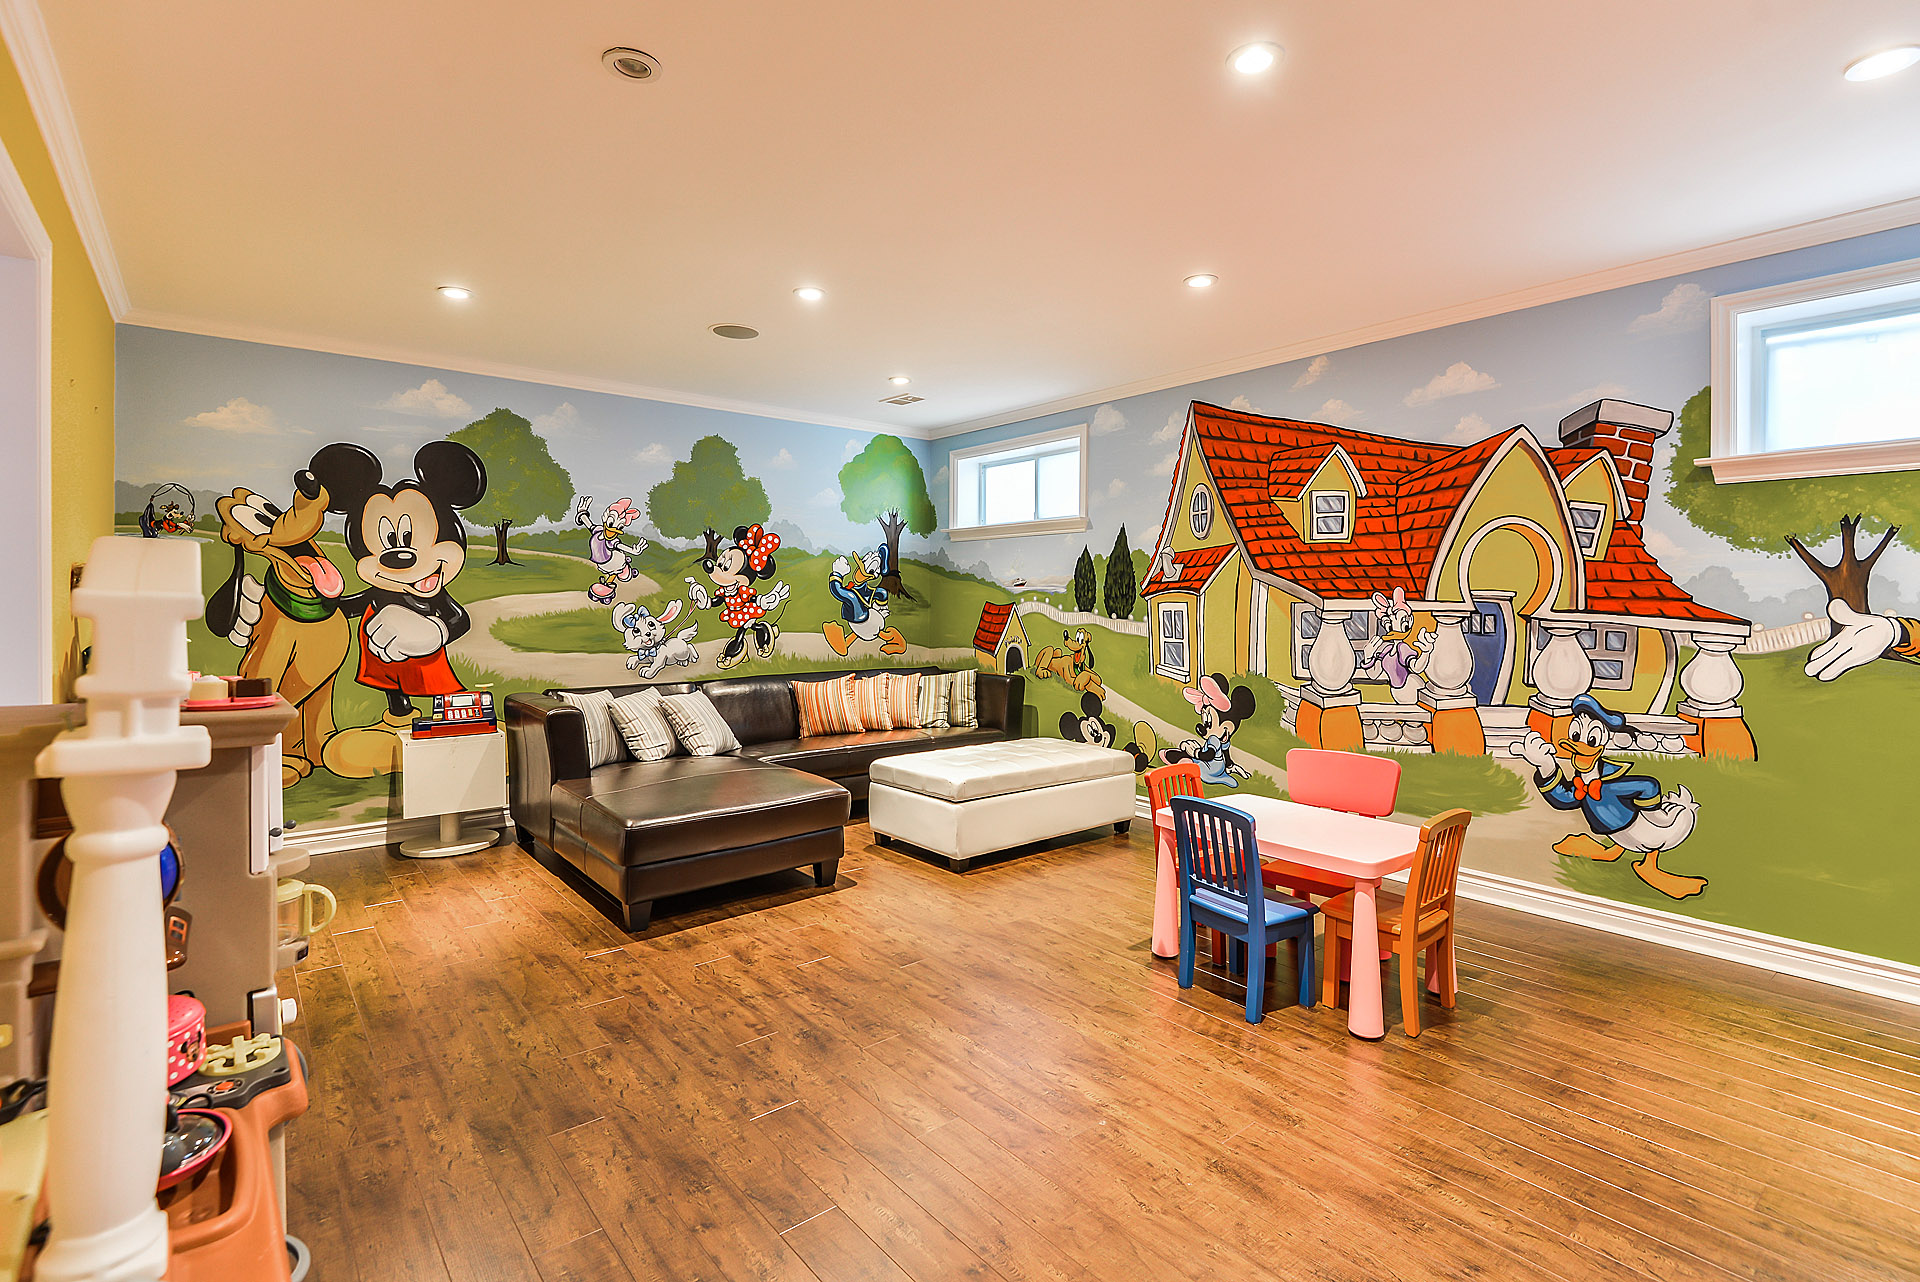 Murals By Marg Mickey Playroom Mural 1.JPG